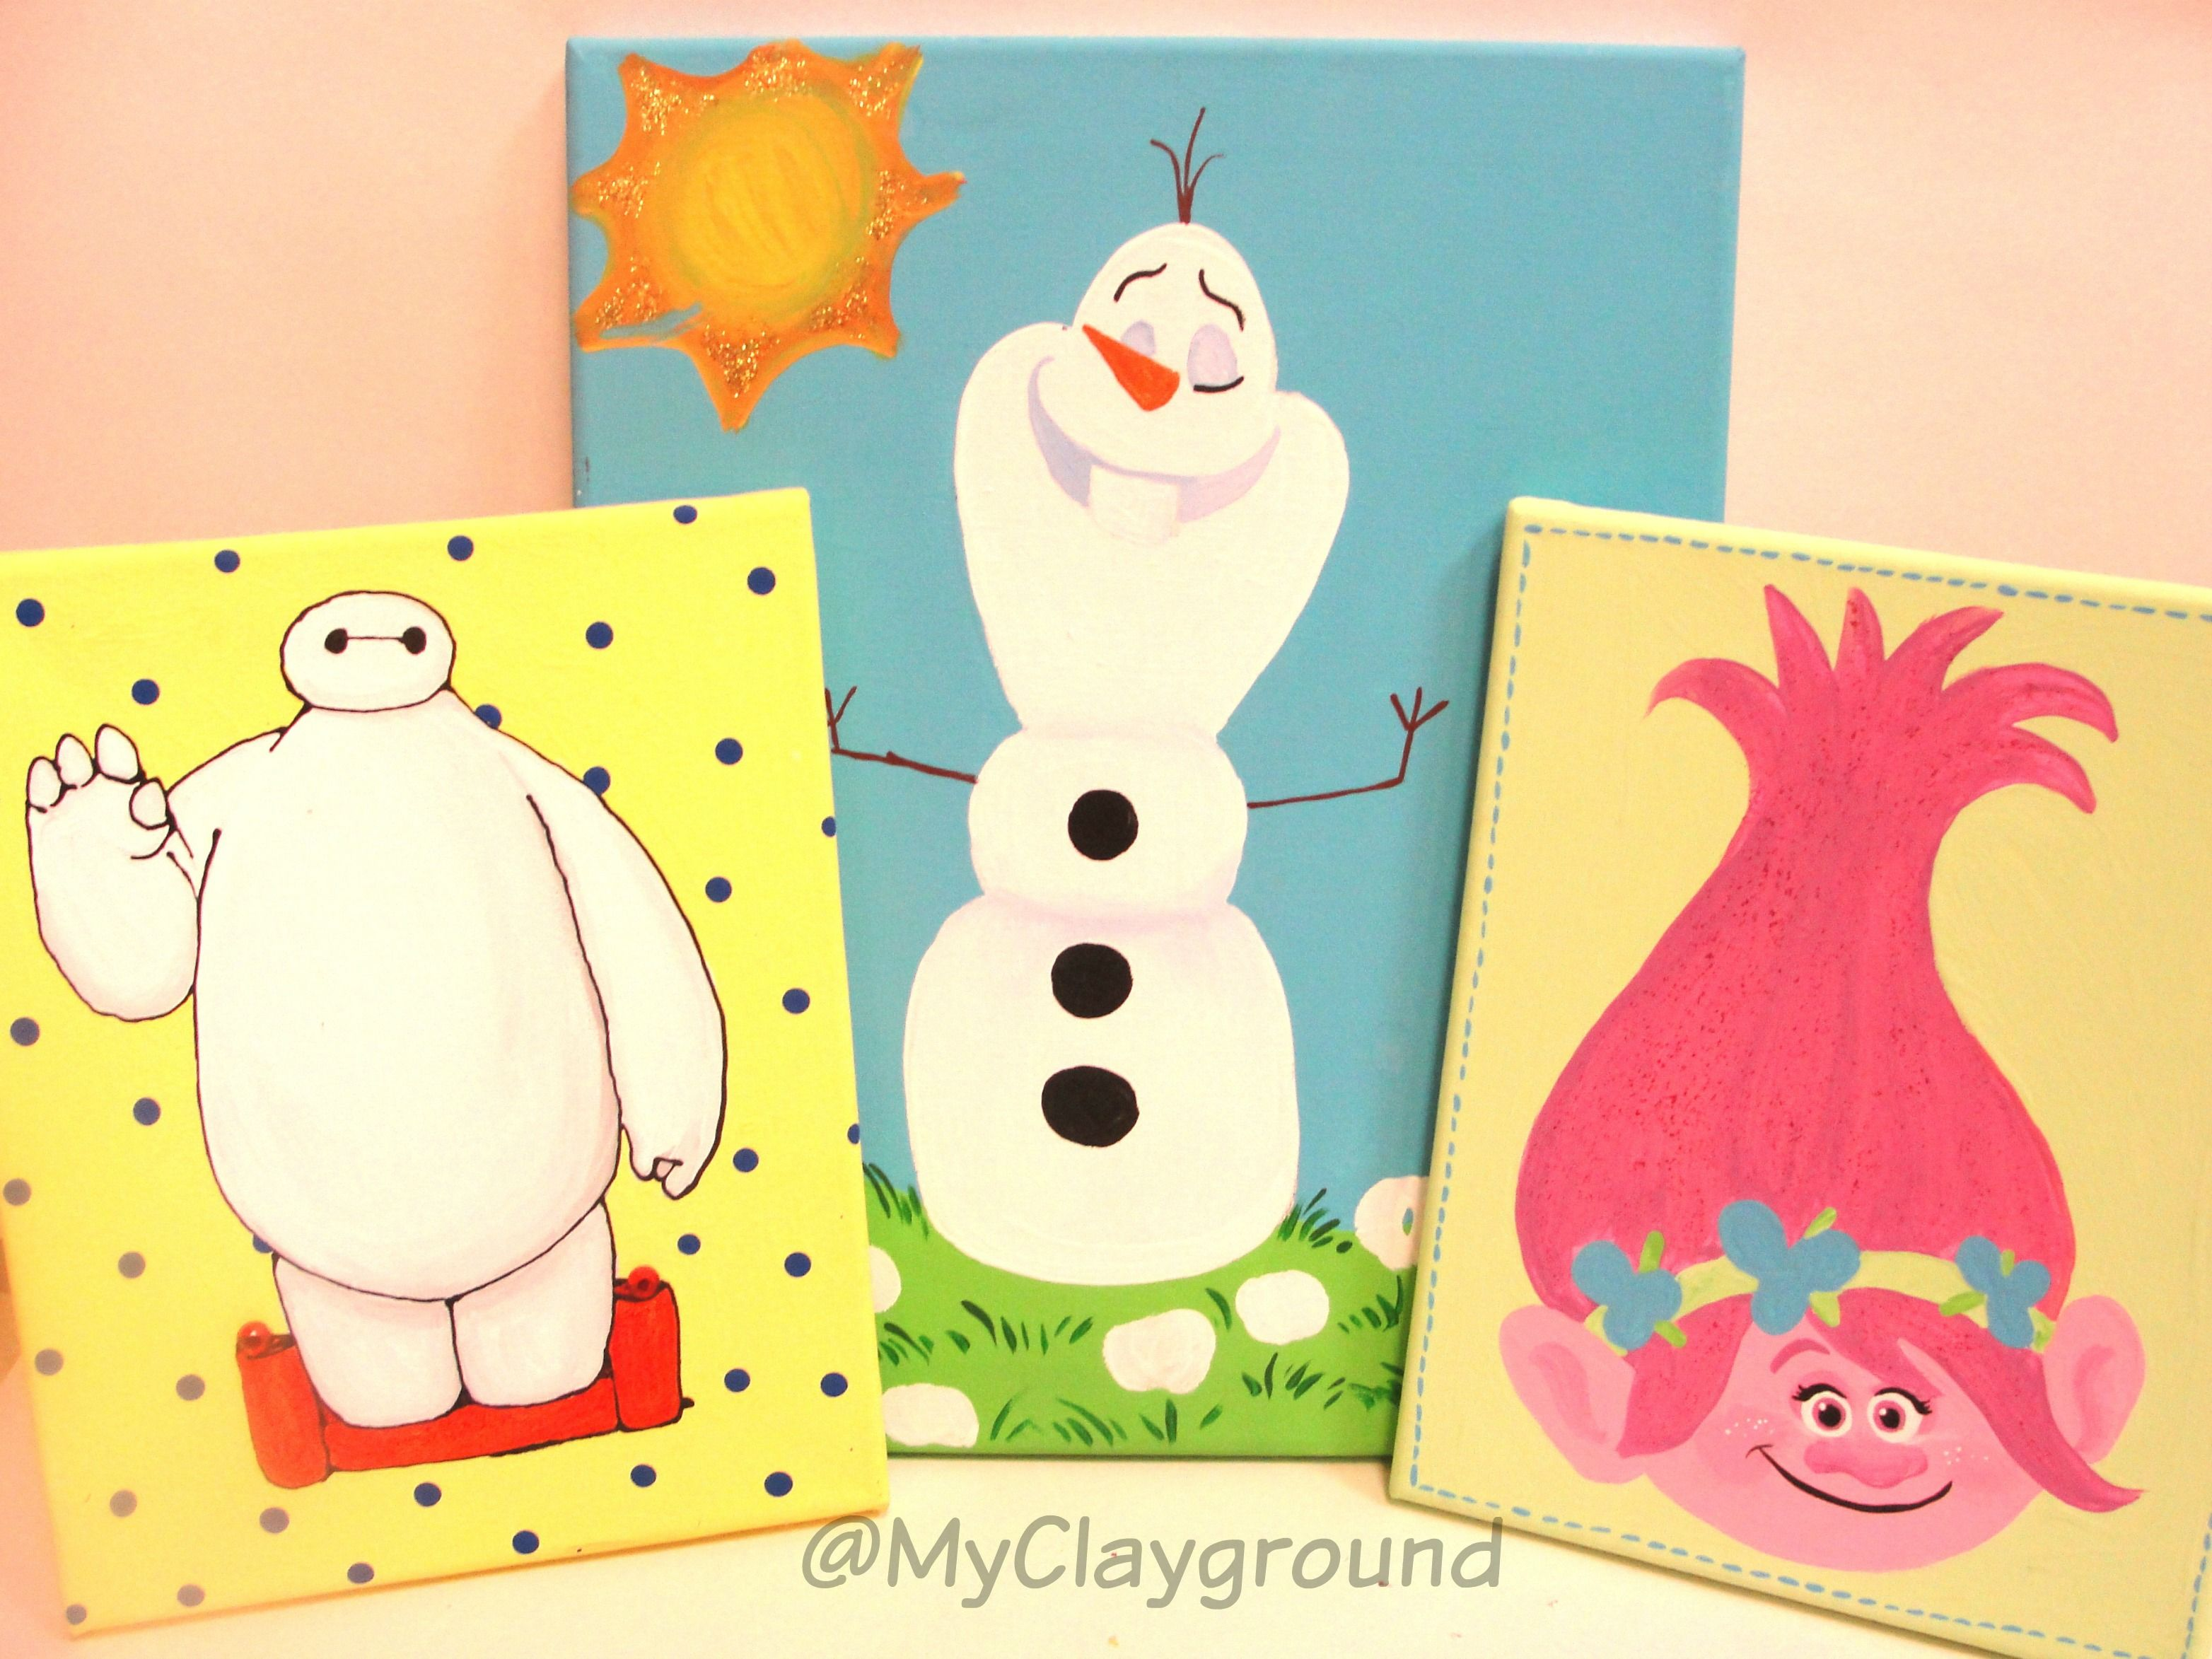 Disney Olaf Baymax Trolls Canvas Painting | Canvas Projects | Pinterest